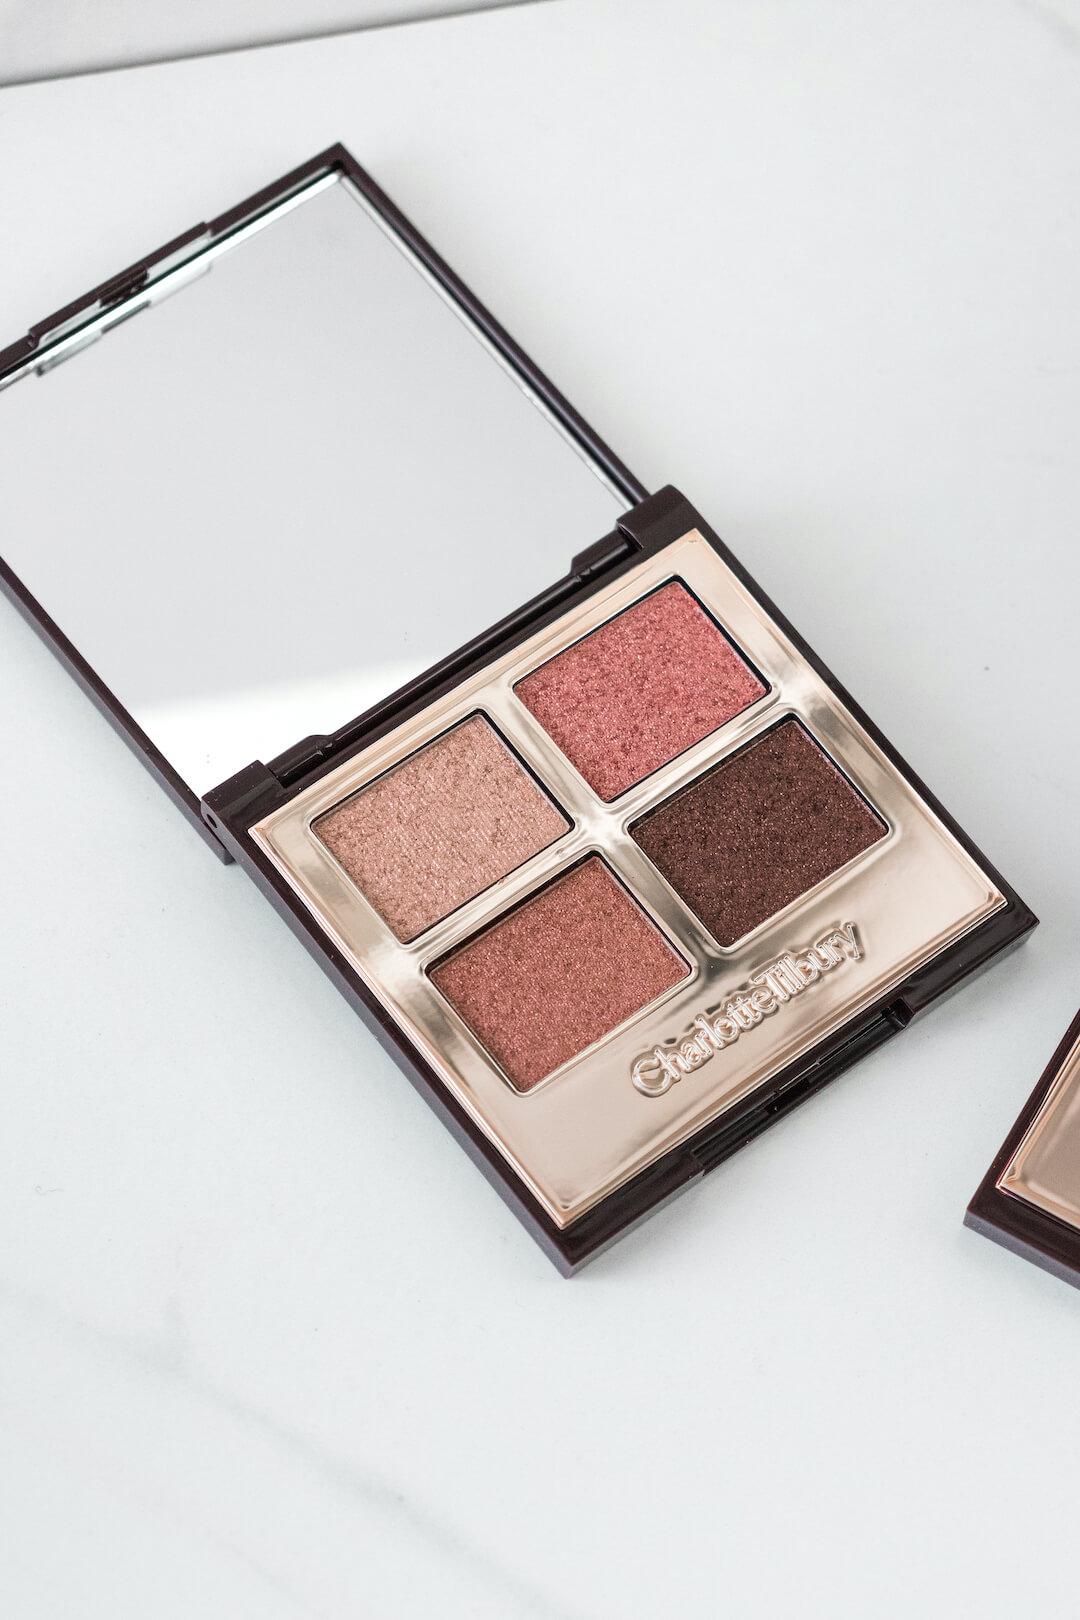 Charlotte-Tilbury-Eyeshadow-pillow-talk-palette-of-pops